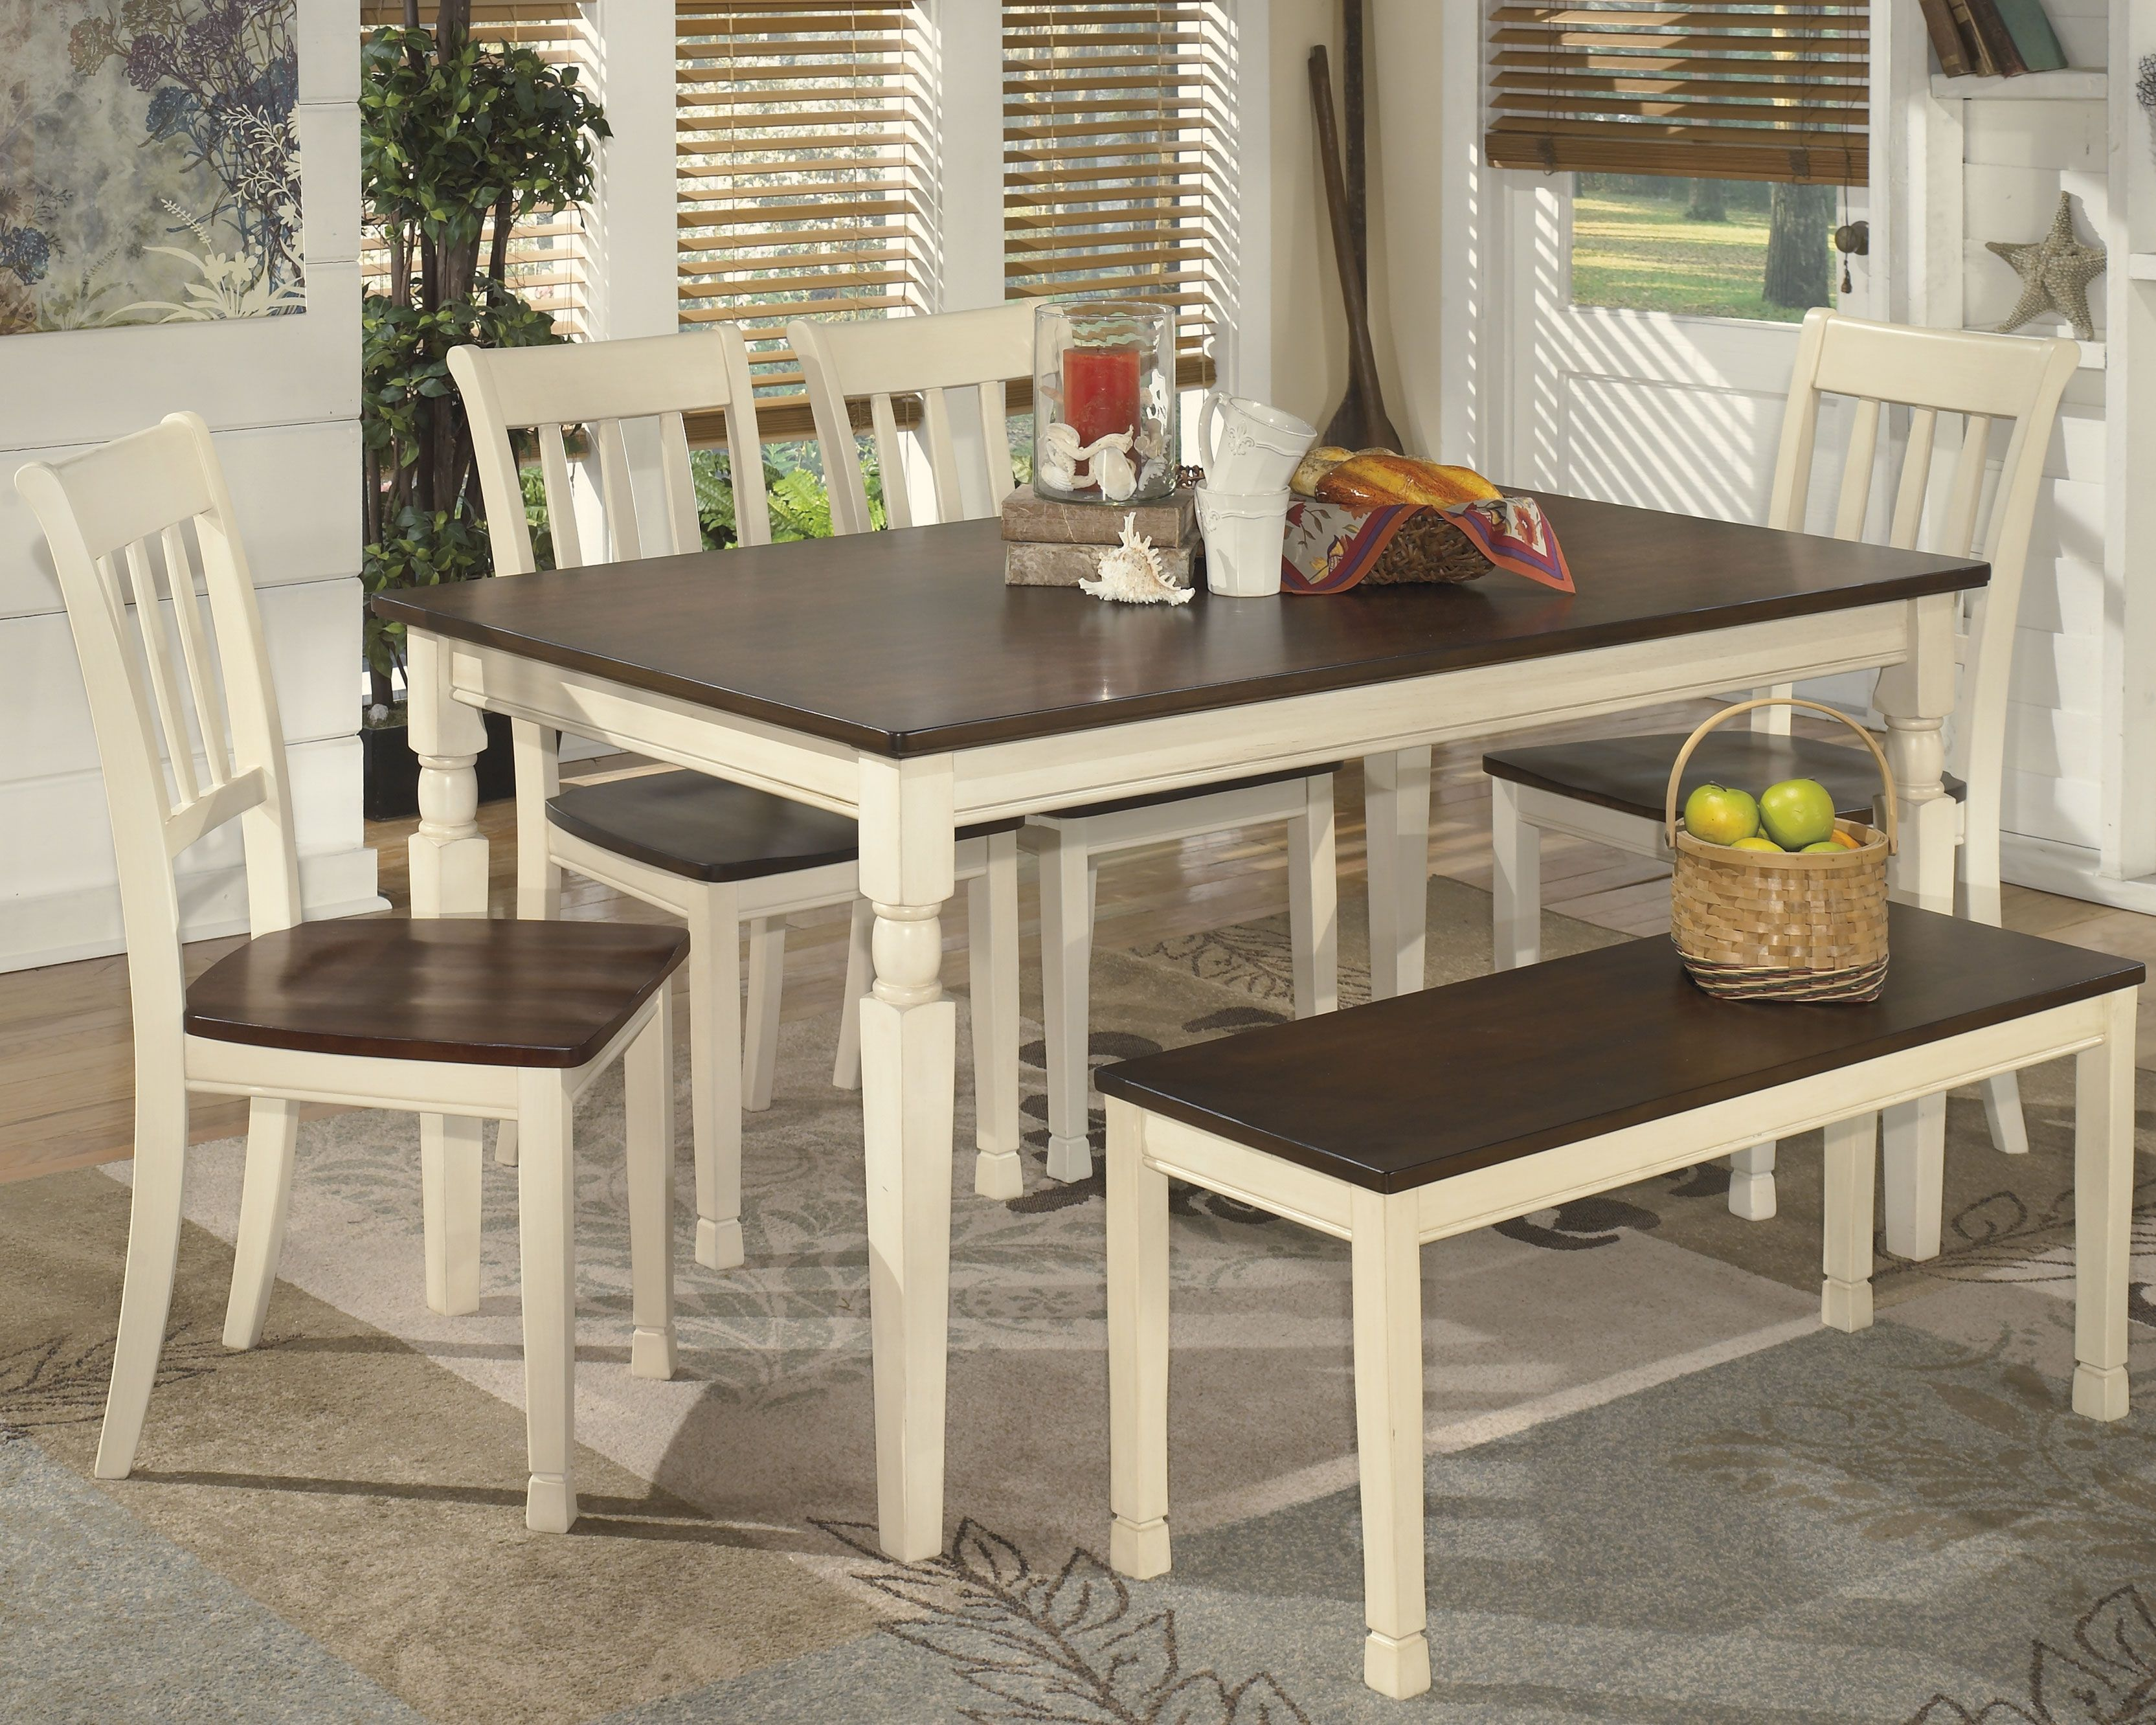 Whitesburg Dining Table And 4 Chairs, Whitesburg Dining Room Chair